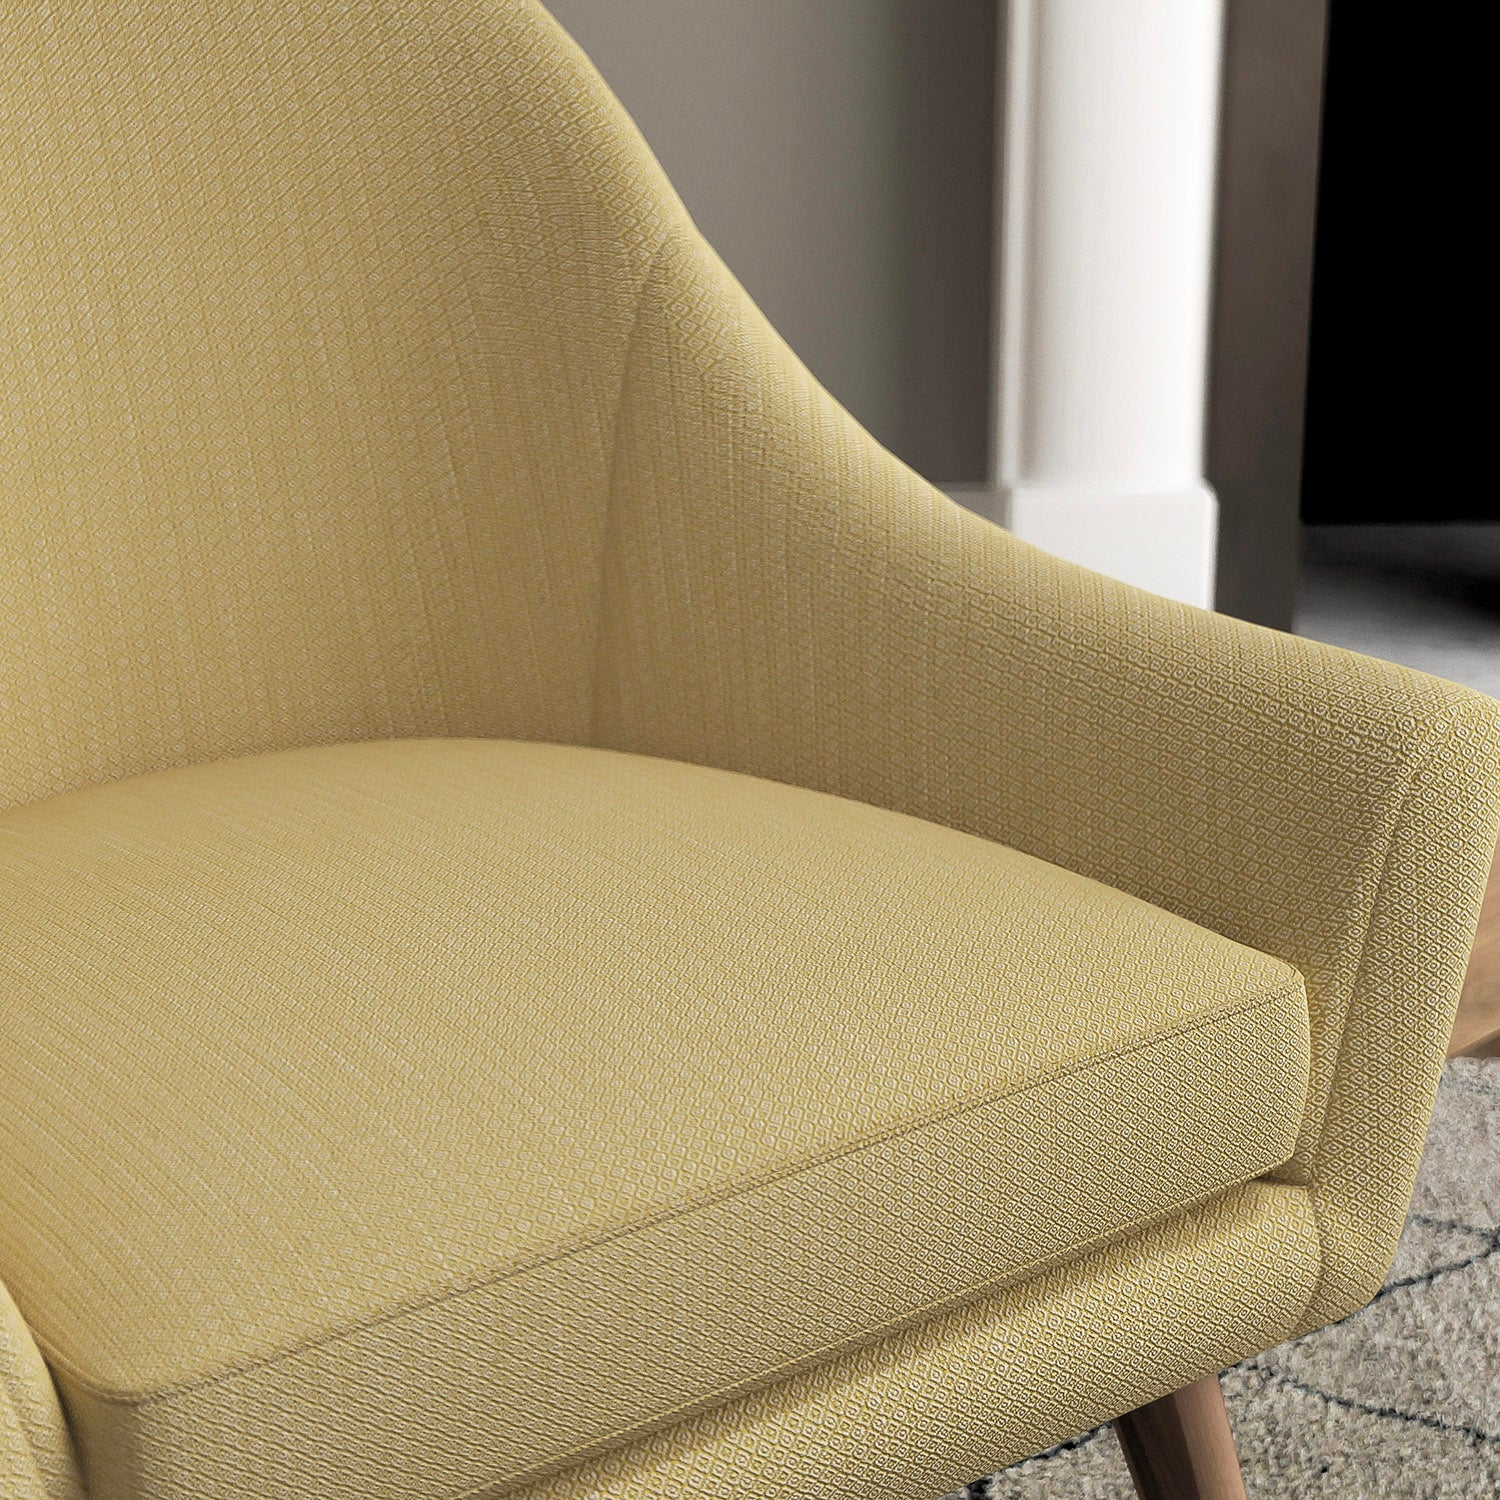 Chair with a bright yellow and neutral upholstery fabric with a small diamond weave fabric